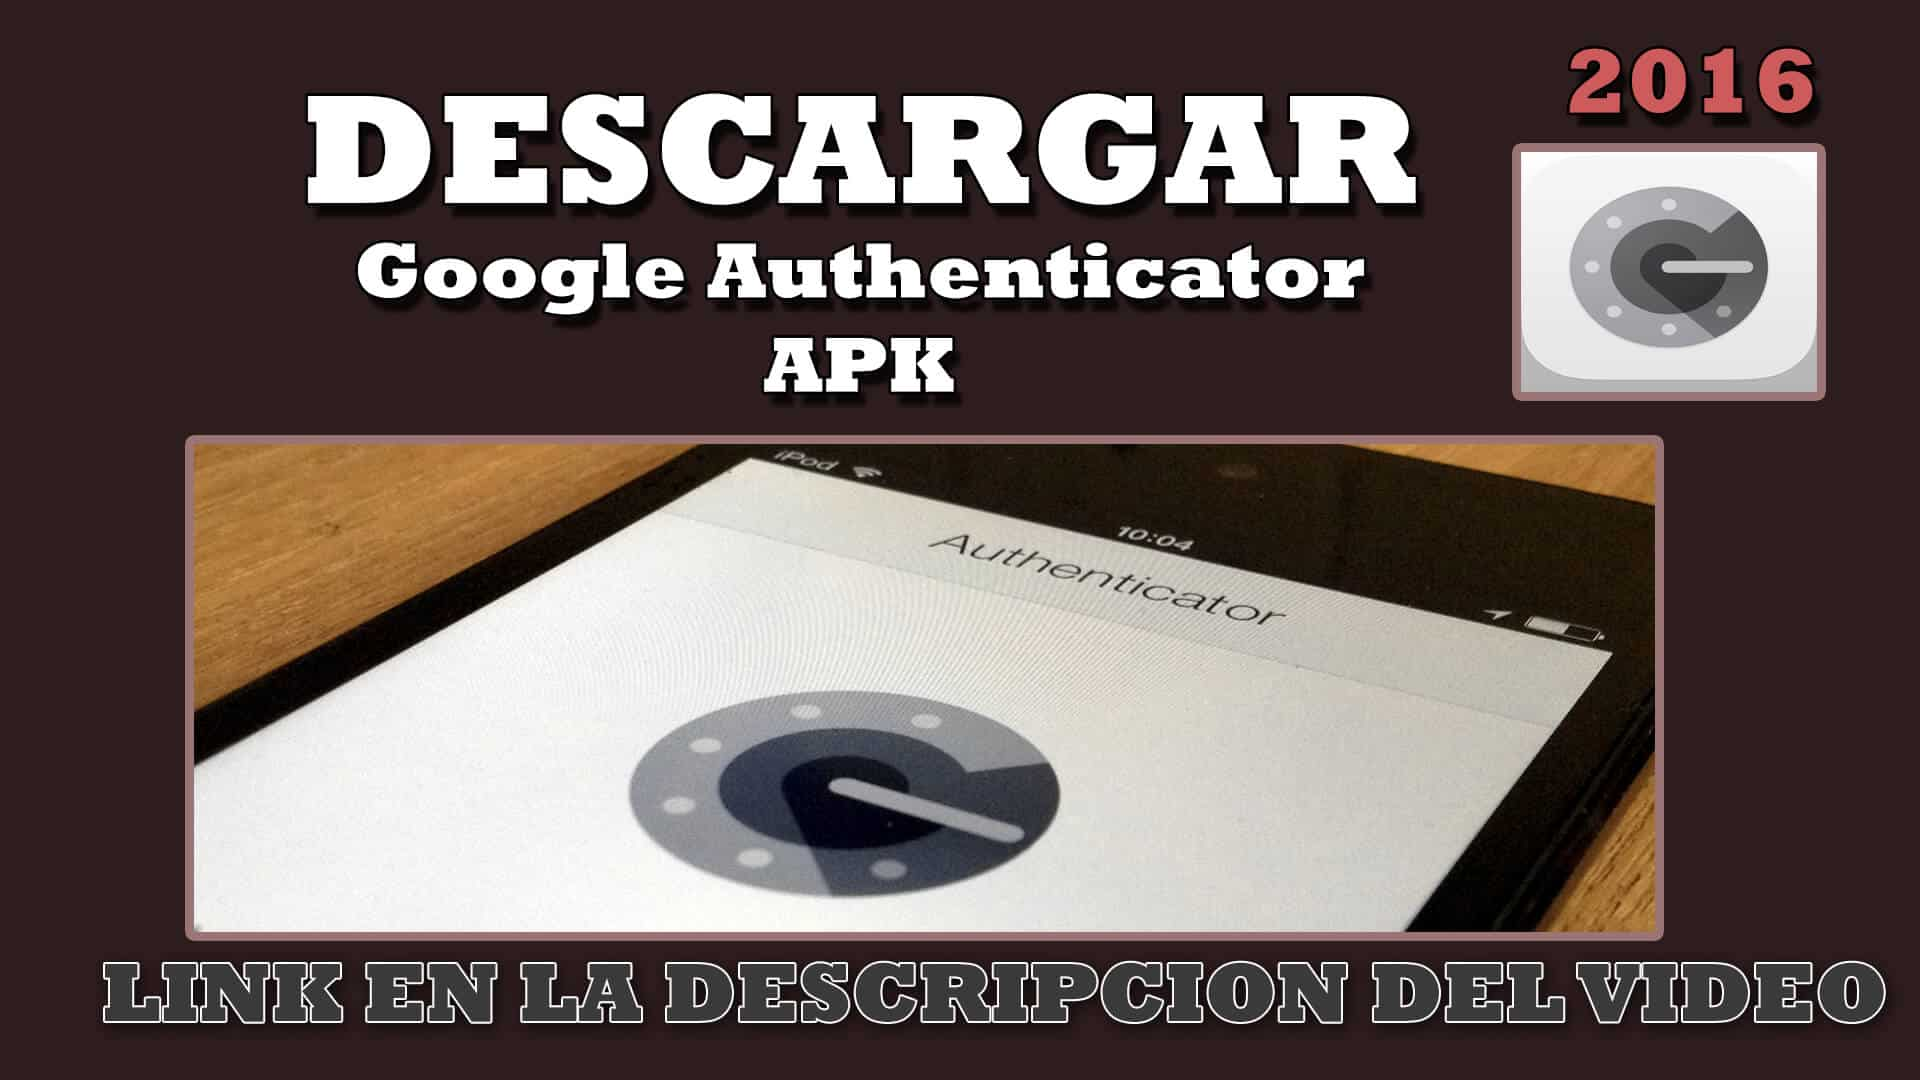 Descargar google Authenticator APK